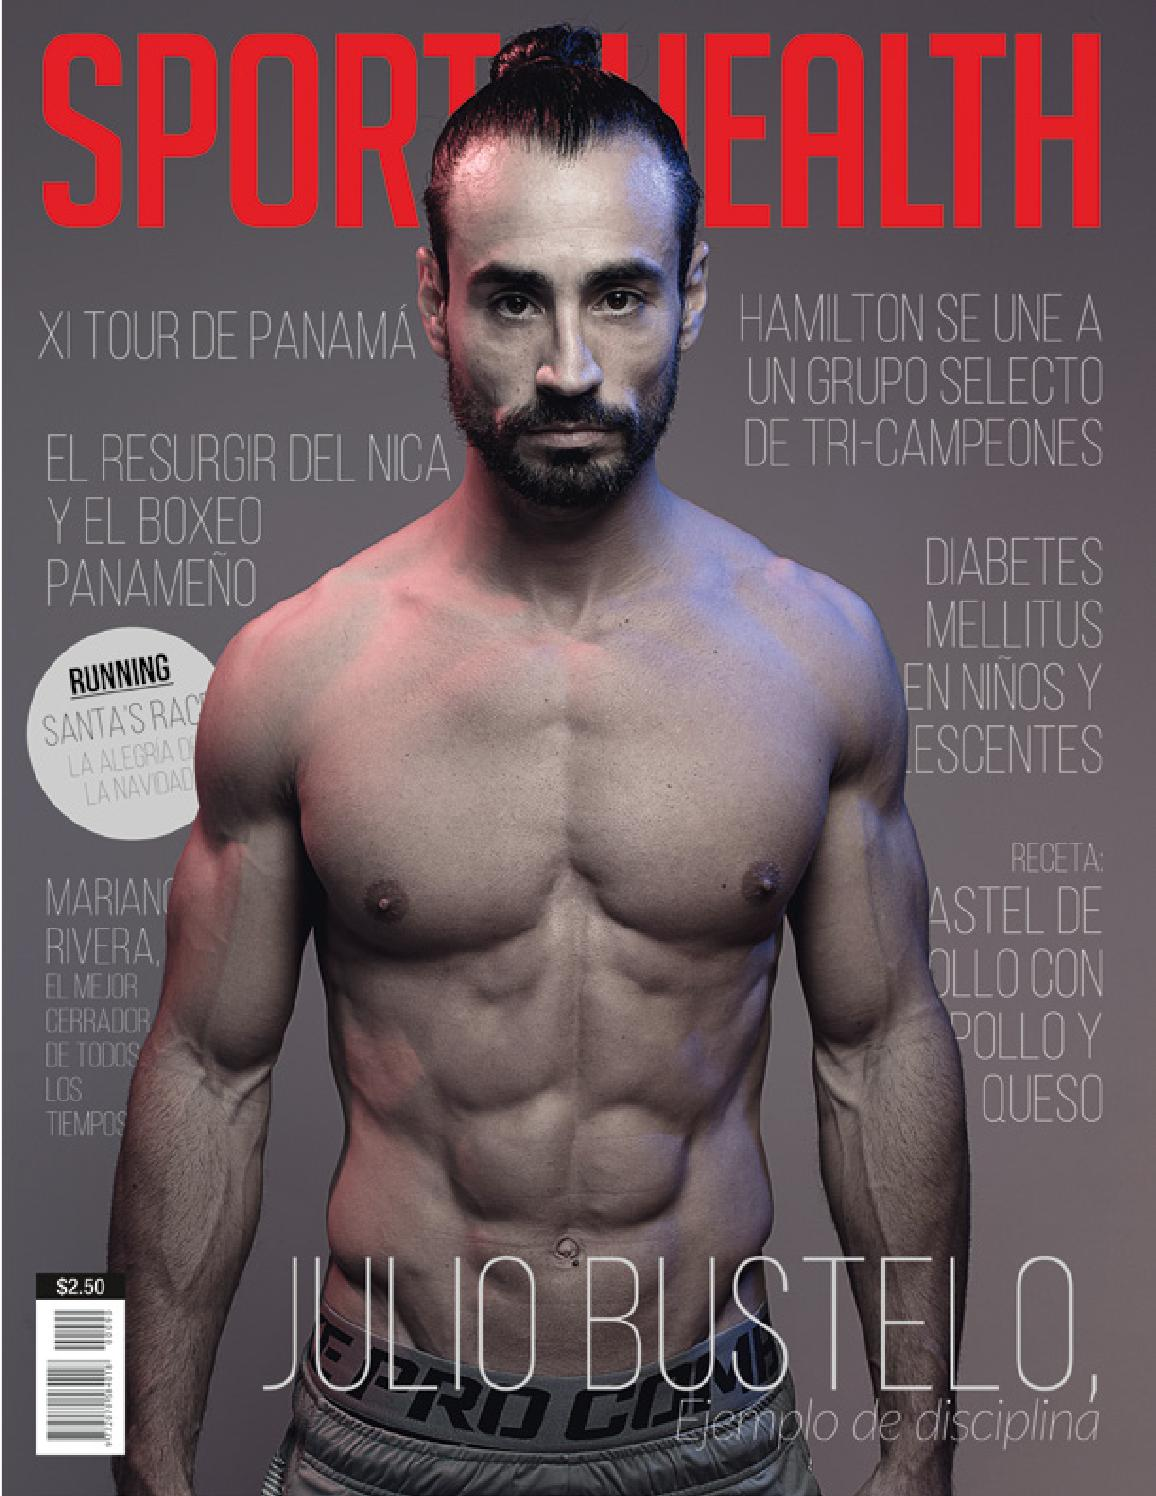 S&h edición 90 by Sports and Health Magazine - issuu